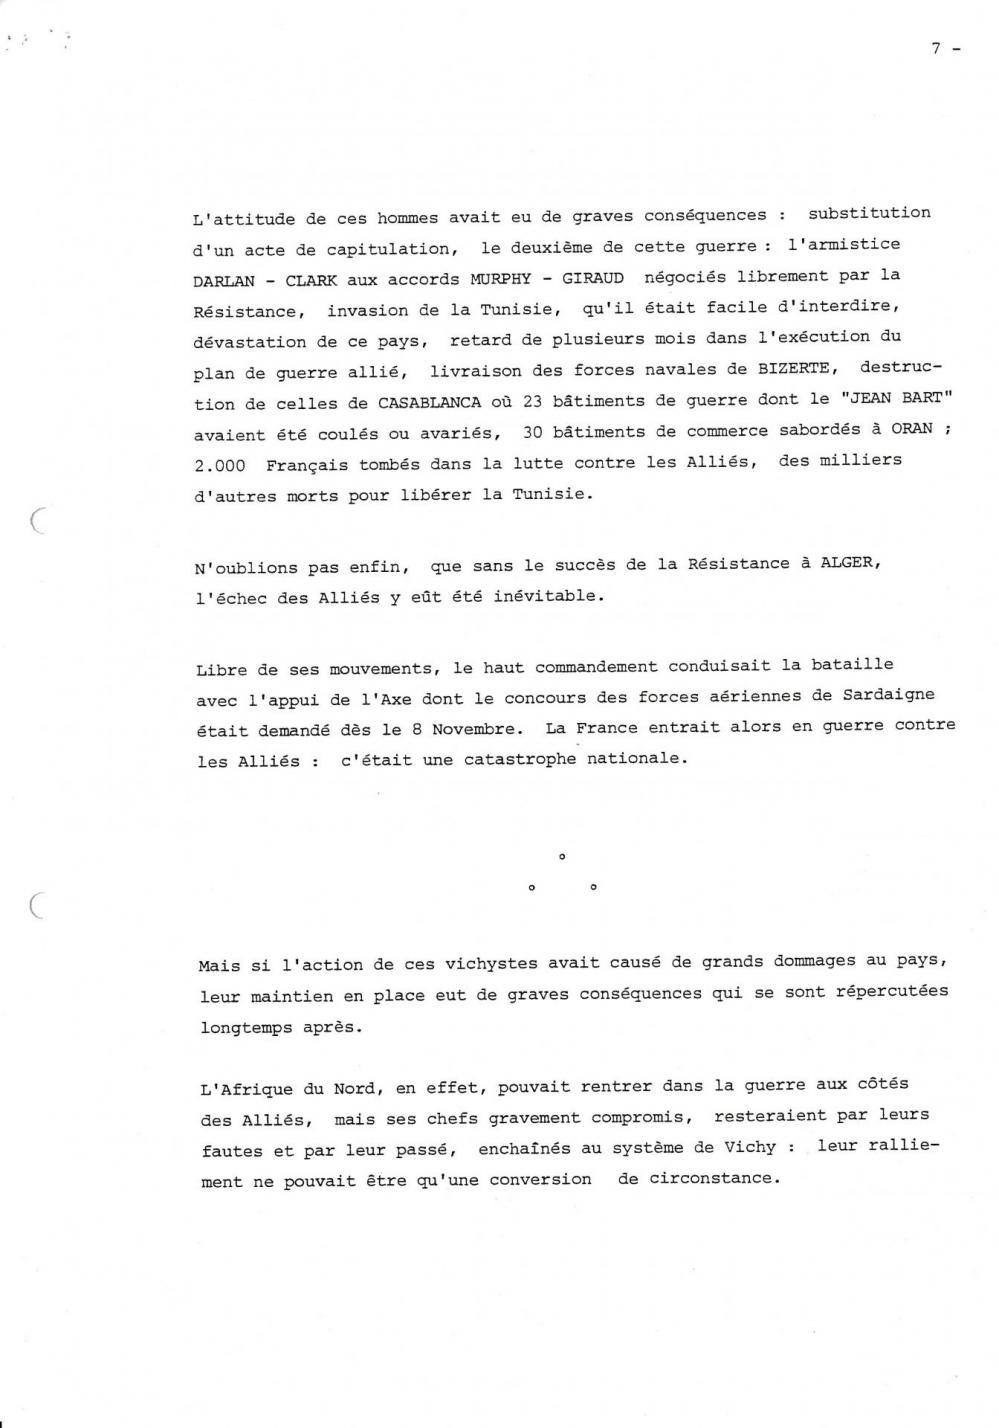 General jousse page7